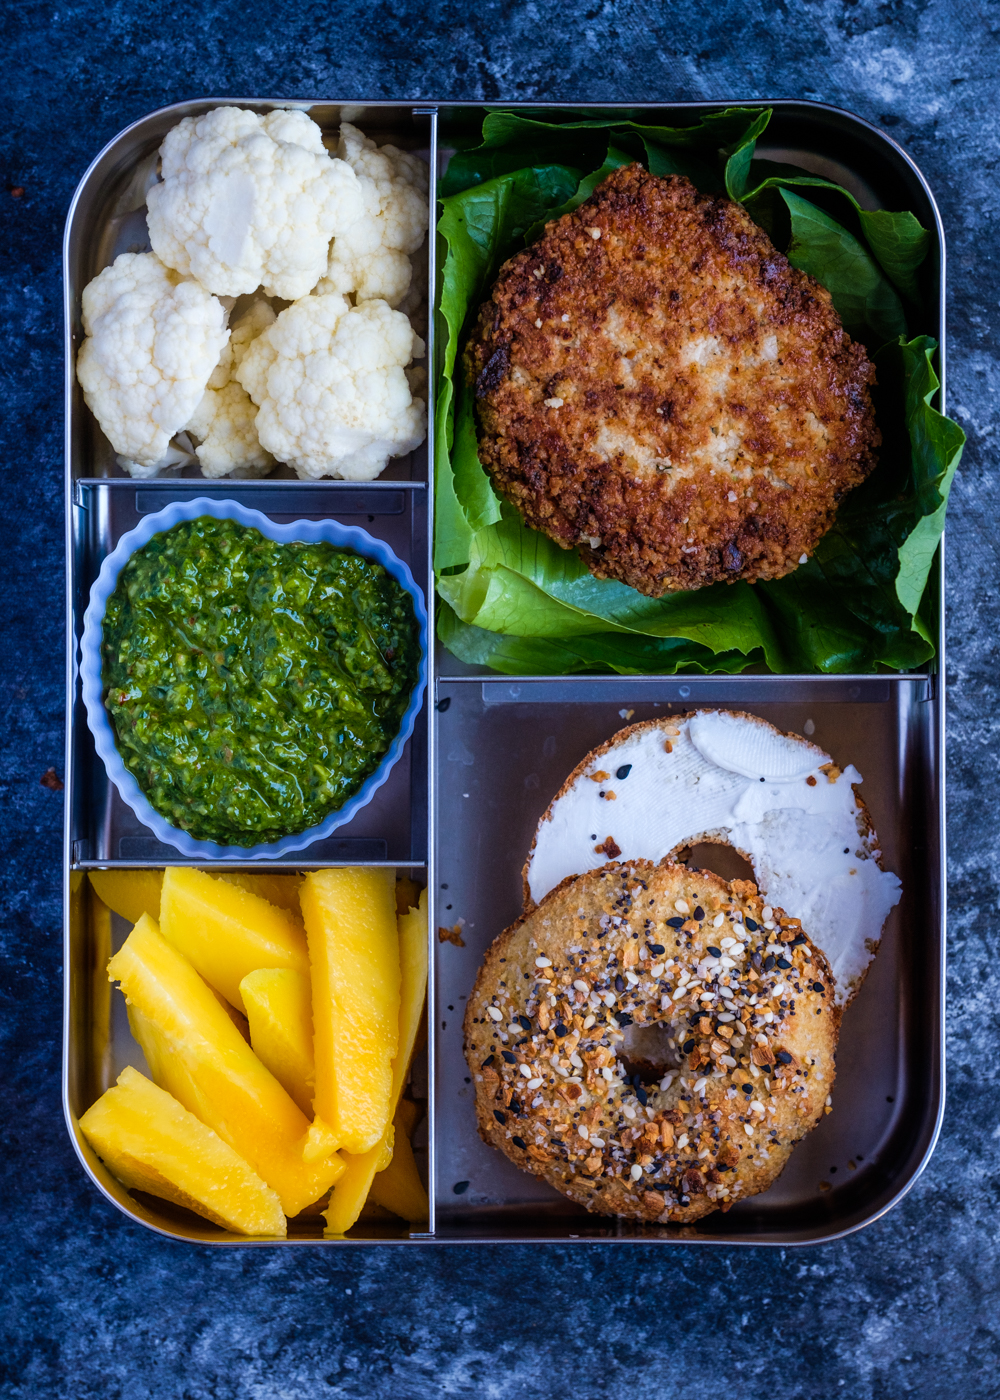 The Alaskan salmon cakes served in a lunch box.